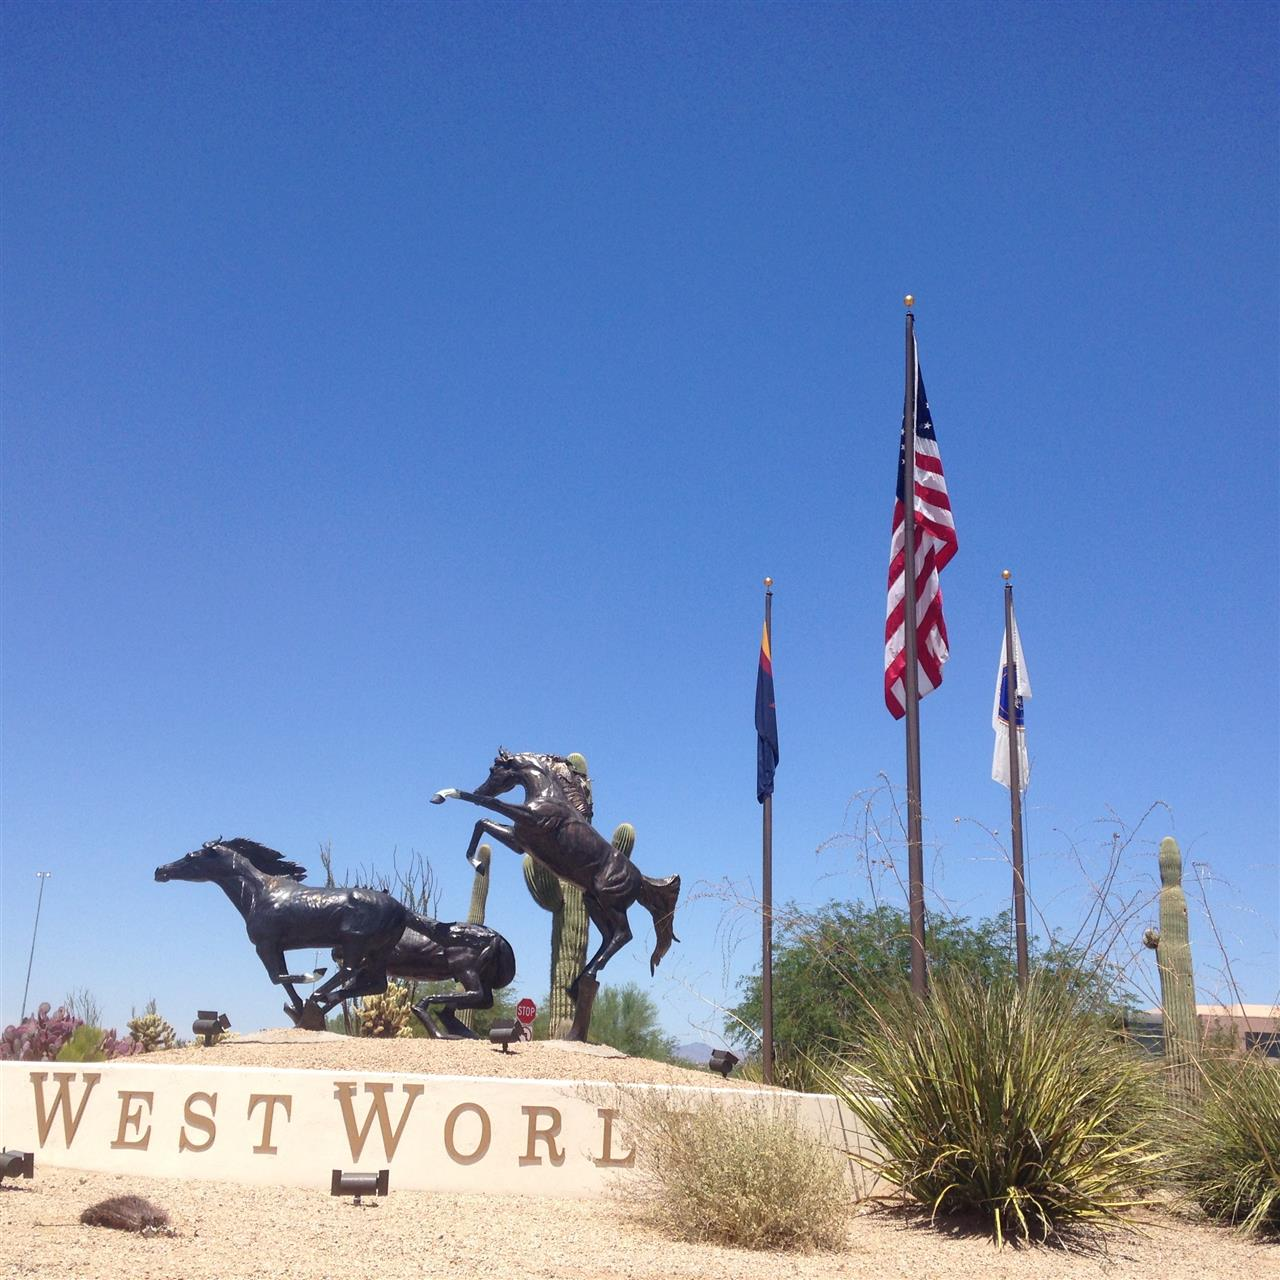 Westworld where three and a half horse shows can be going on at the same time!  #Scottsdale#Arizona